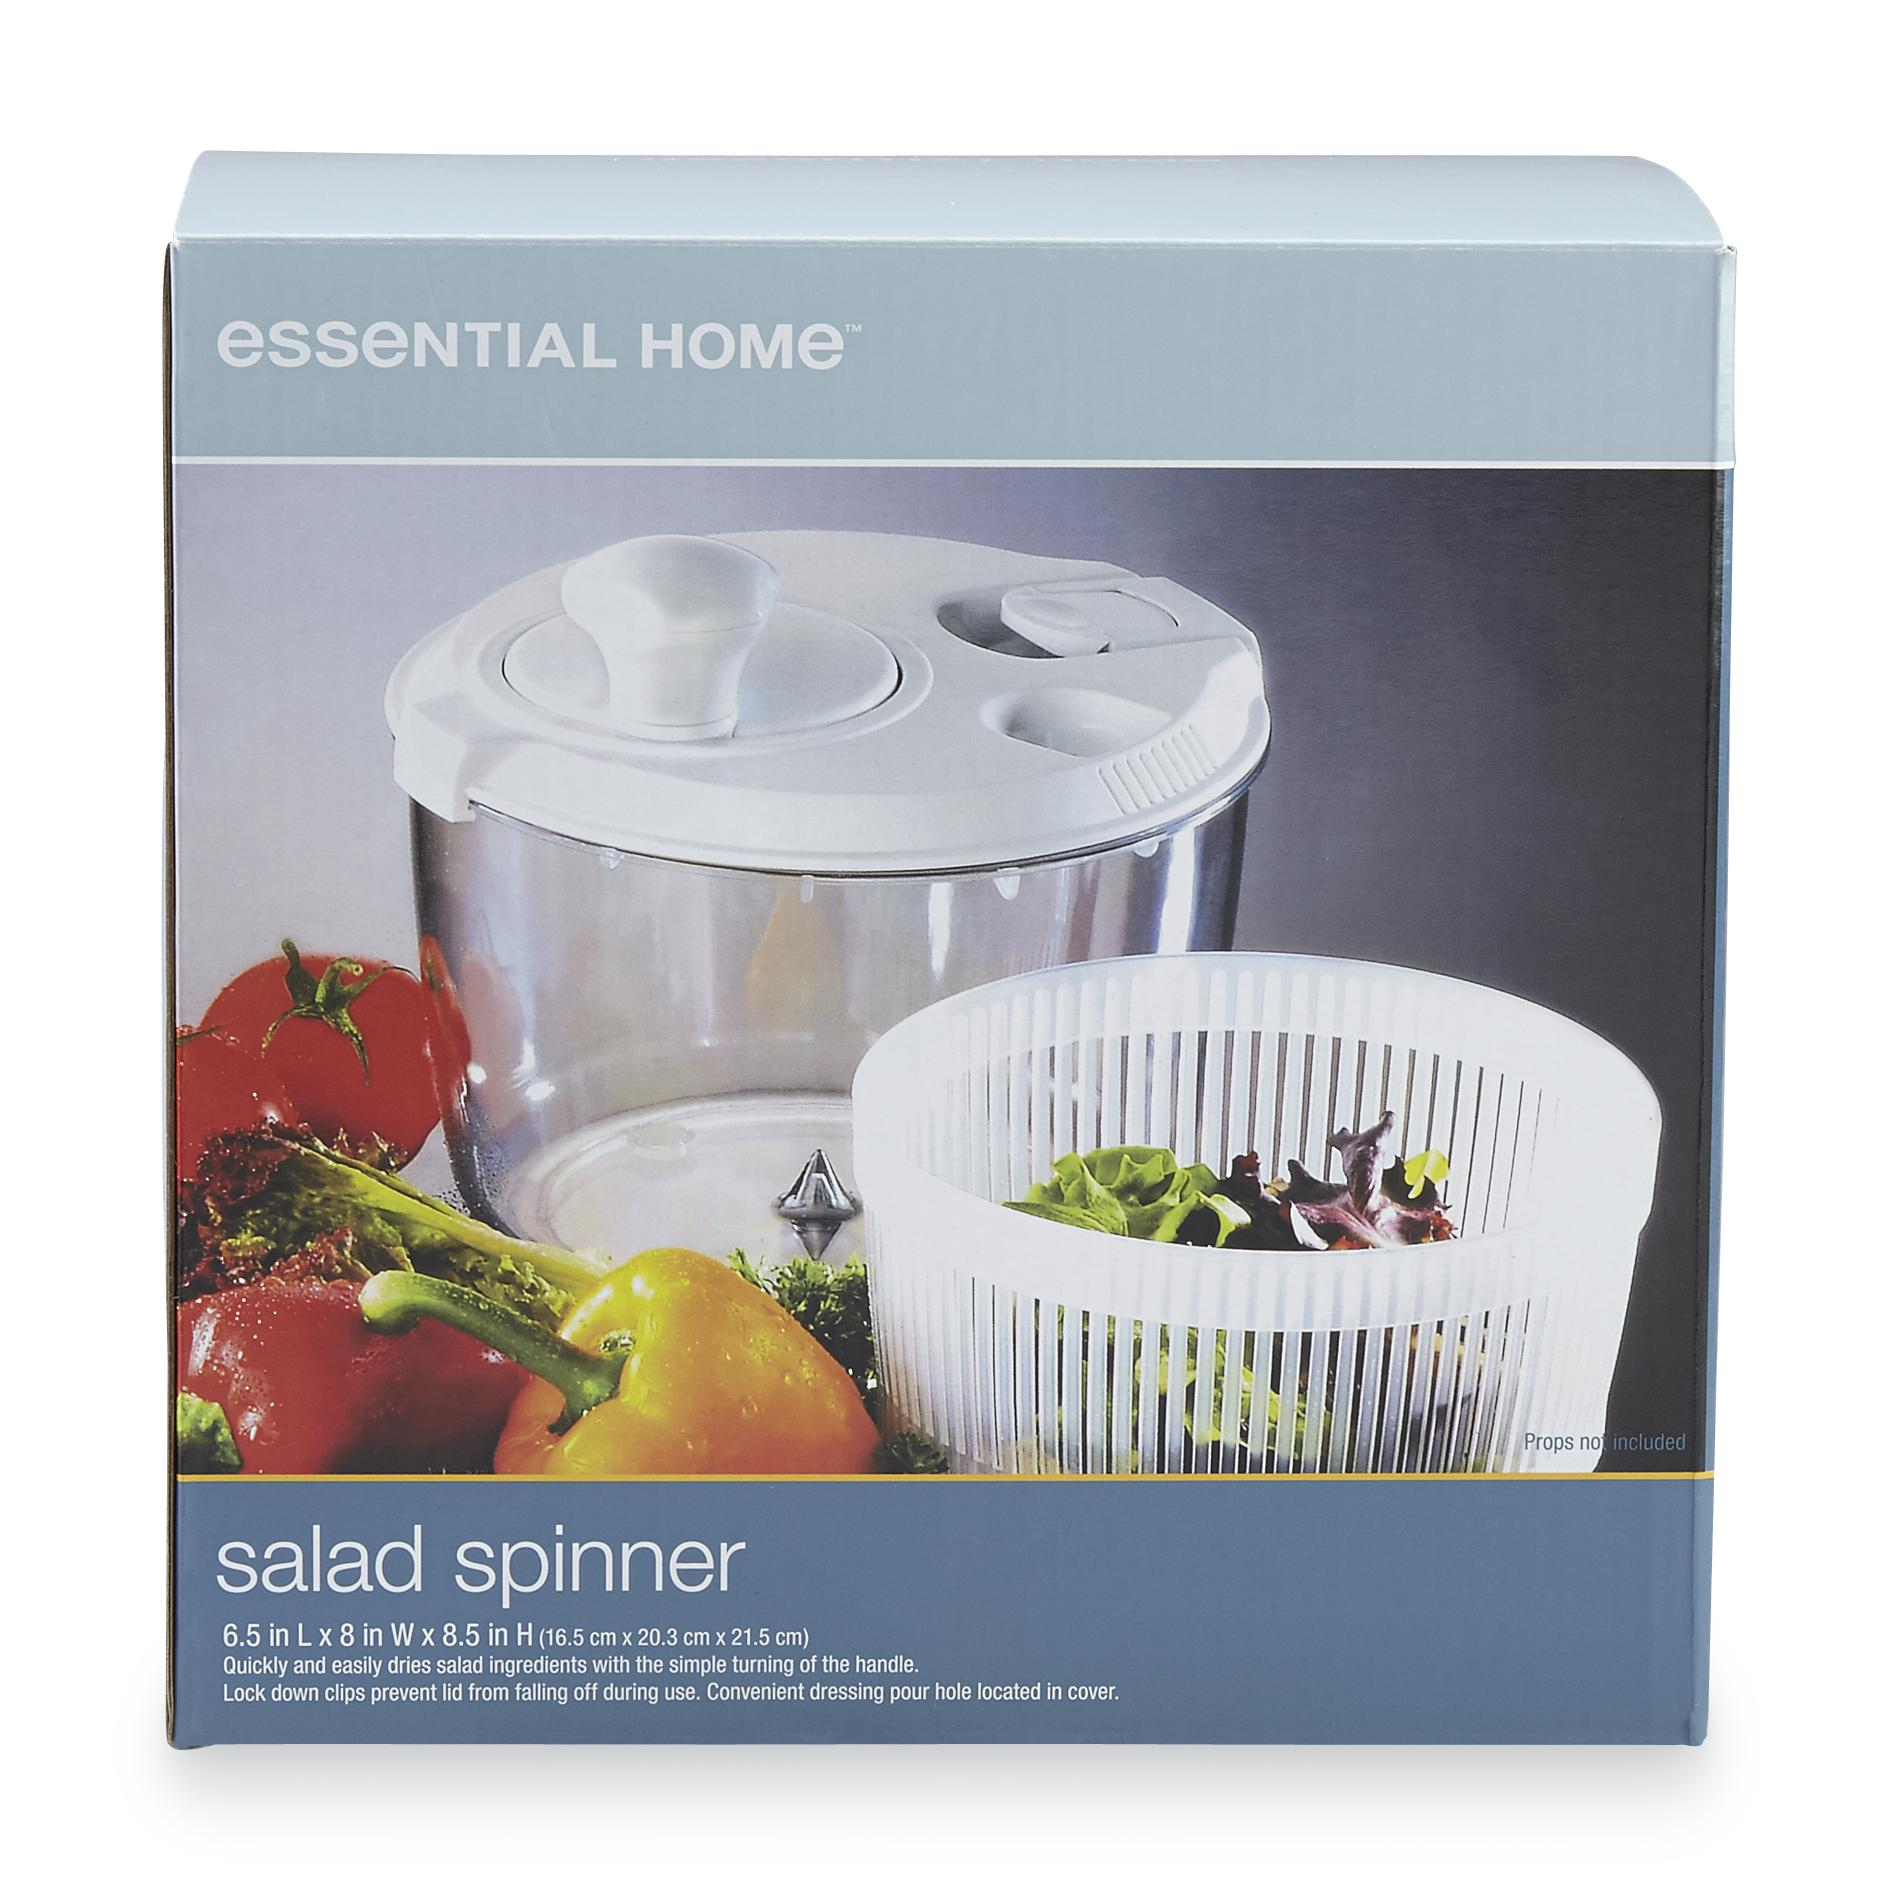 Essential Home Salad Spinner